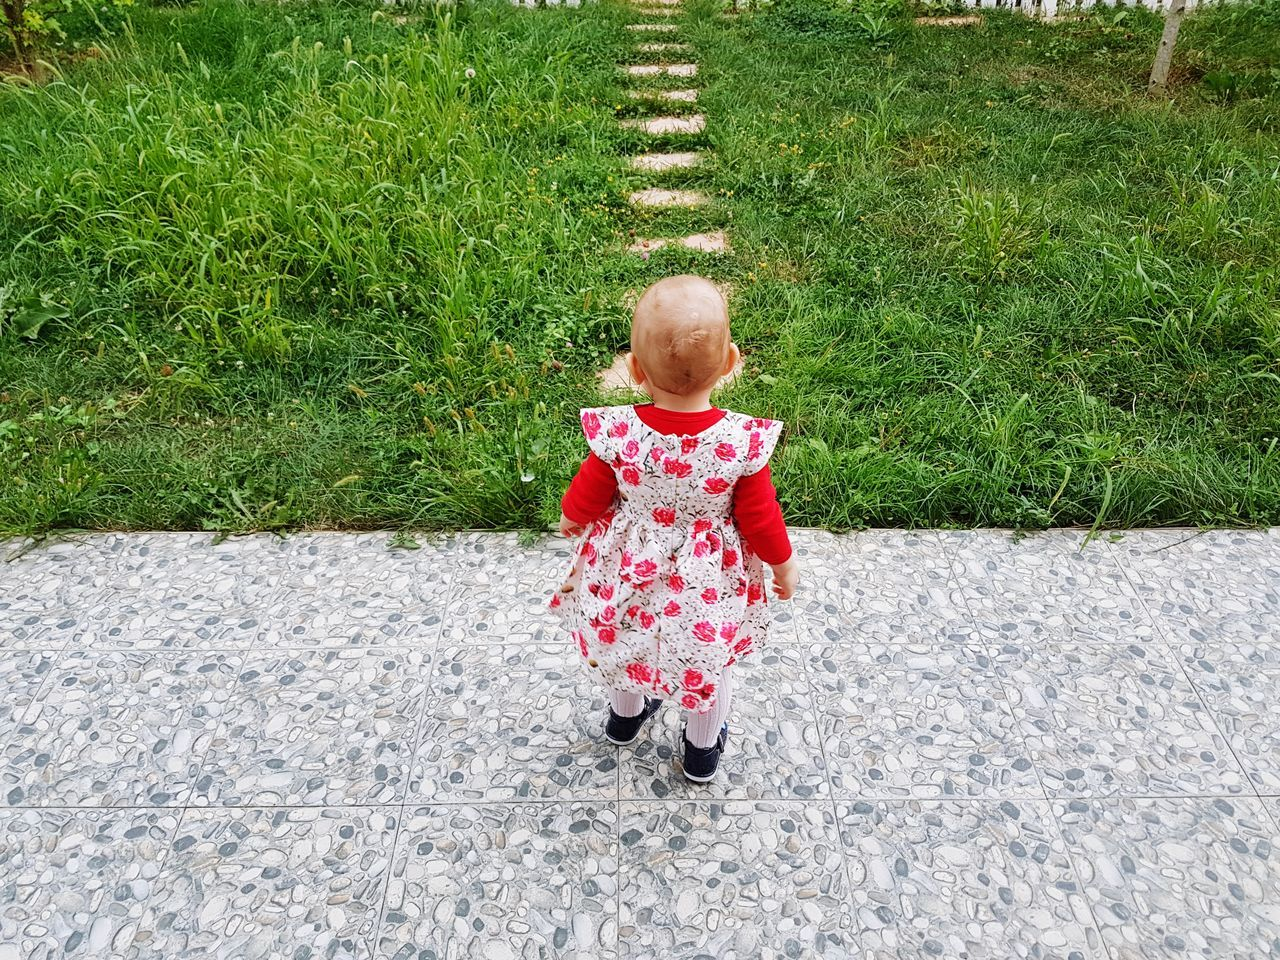 Rear View Of Girl By Grass